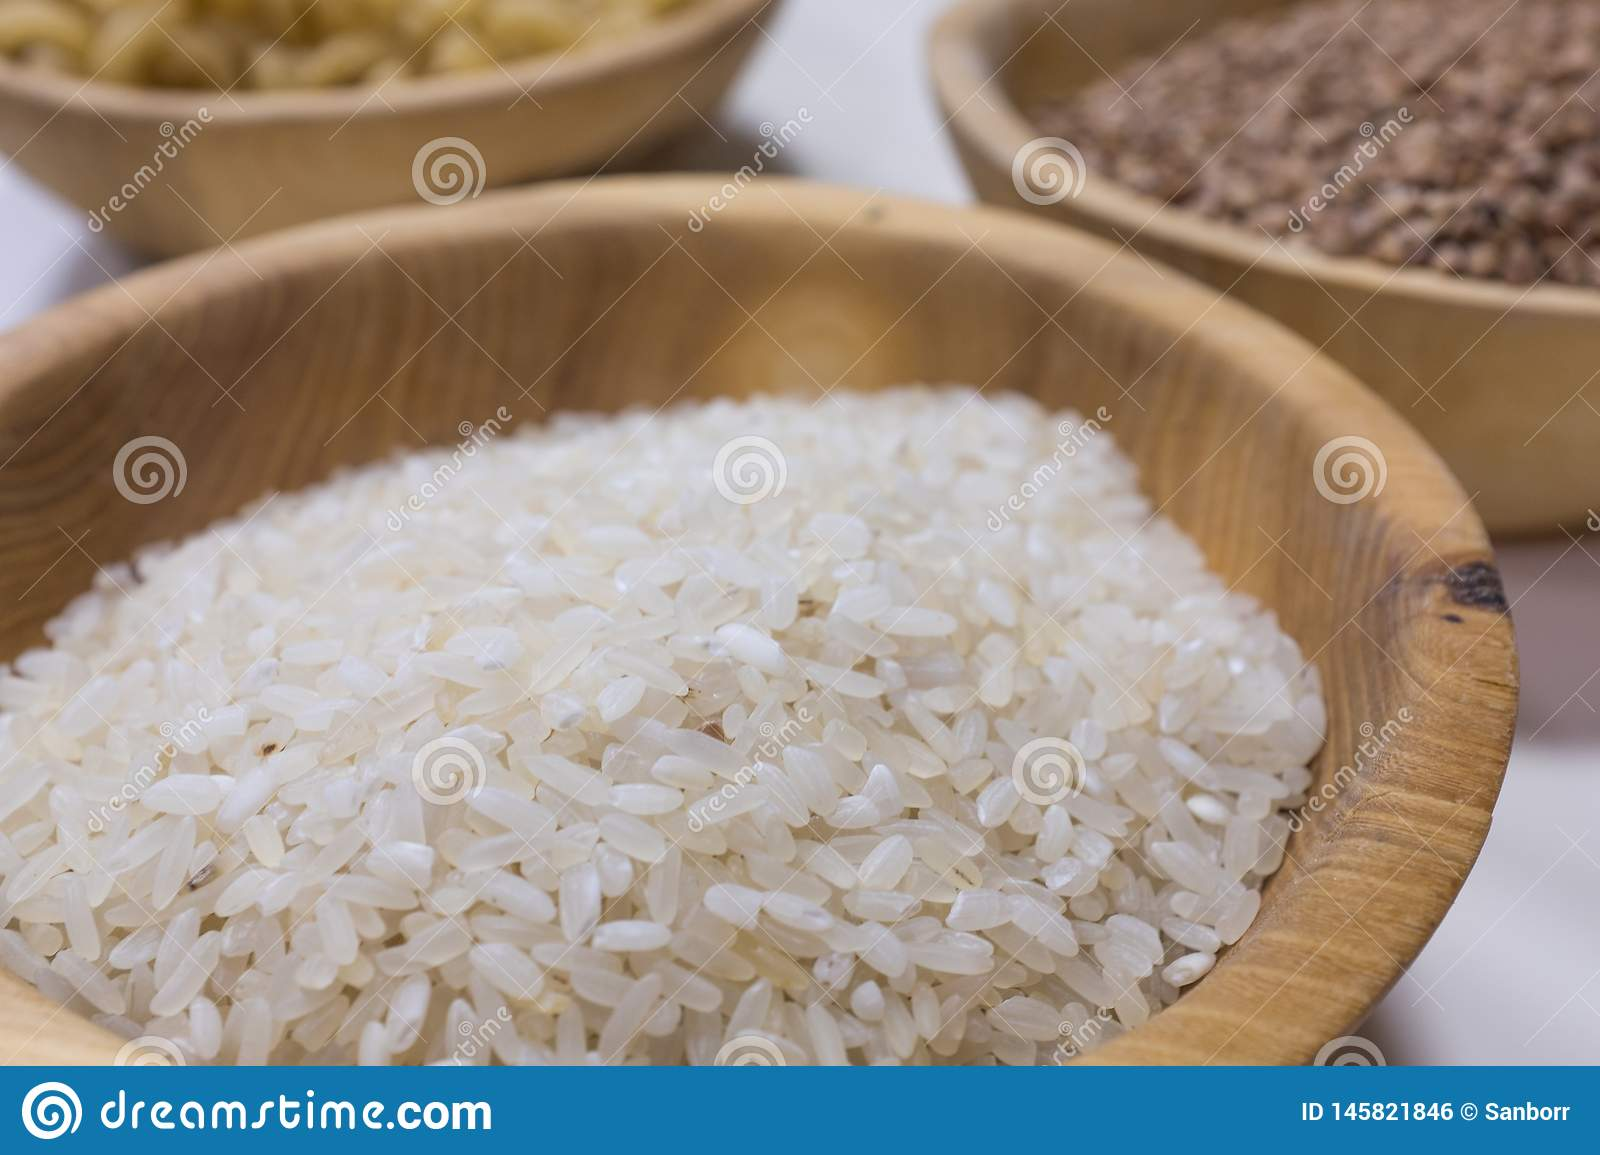 Bowl with rice on white background. Natural food high in protein